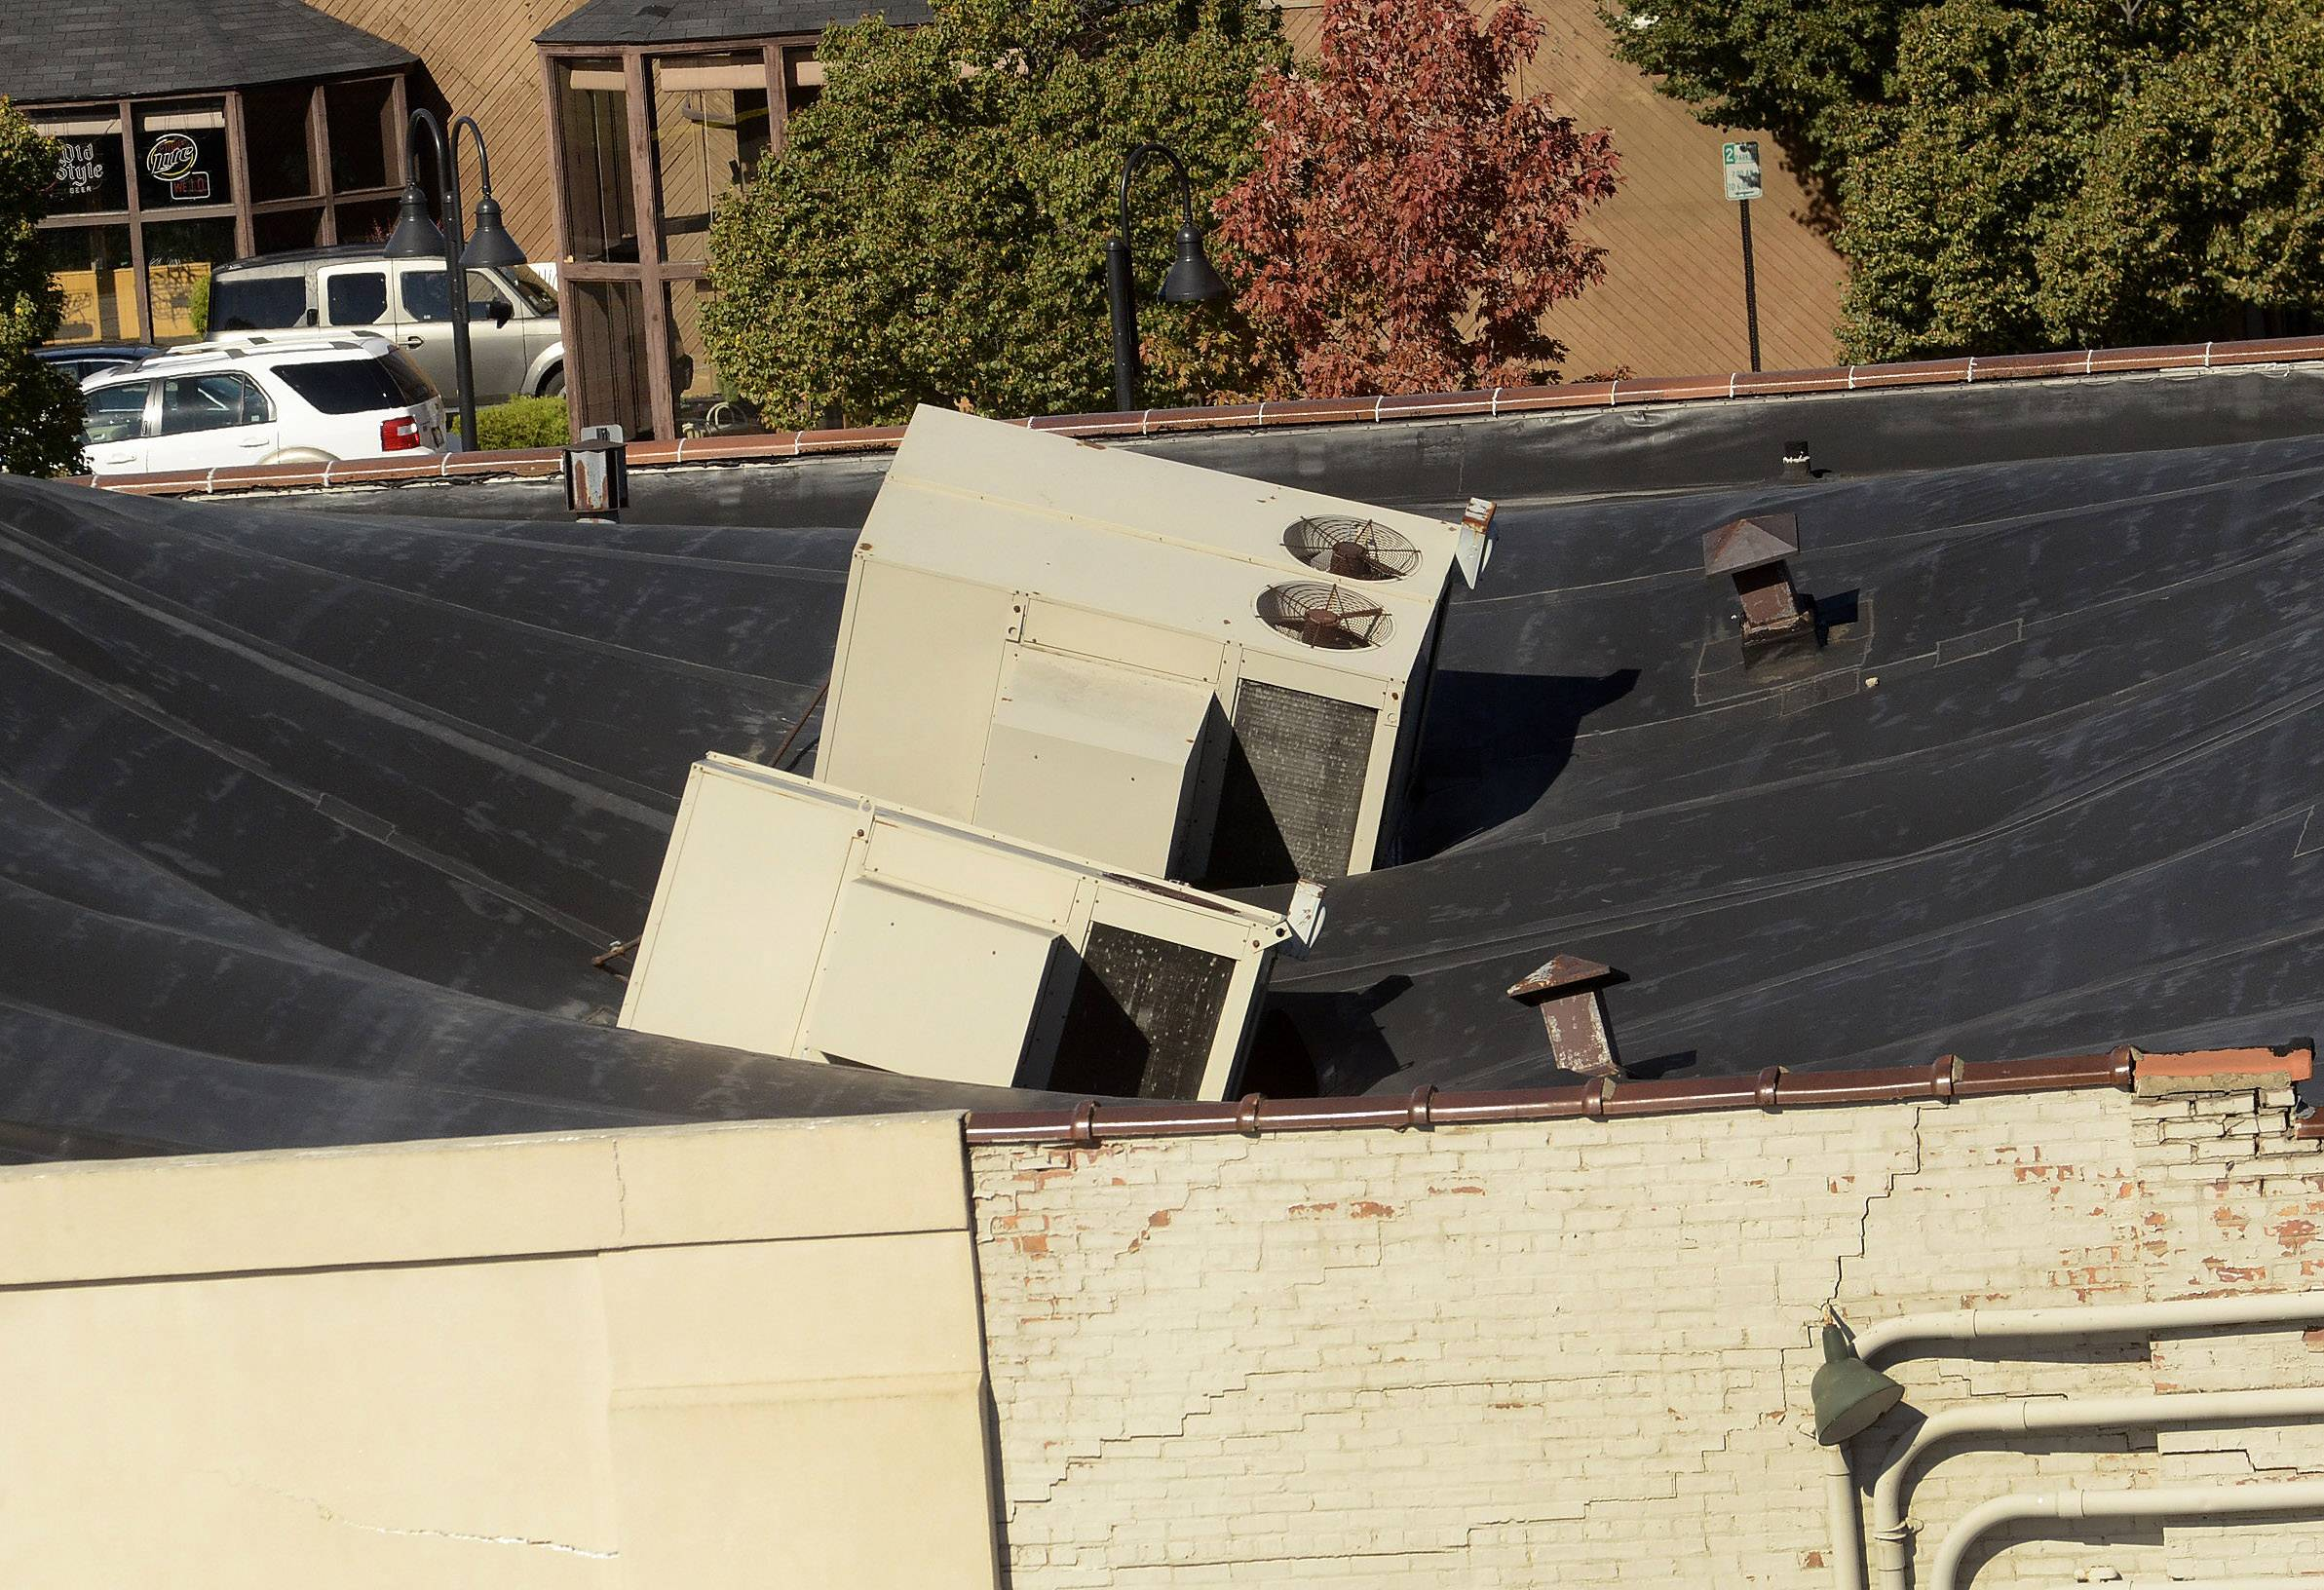 Mount Prospect building still could collapse